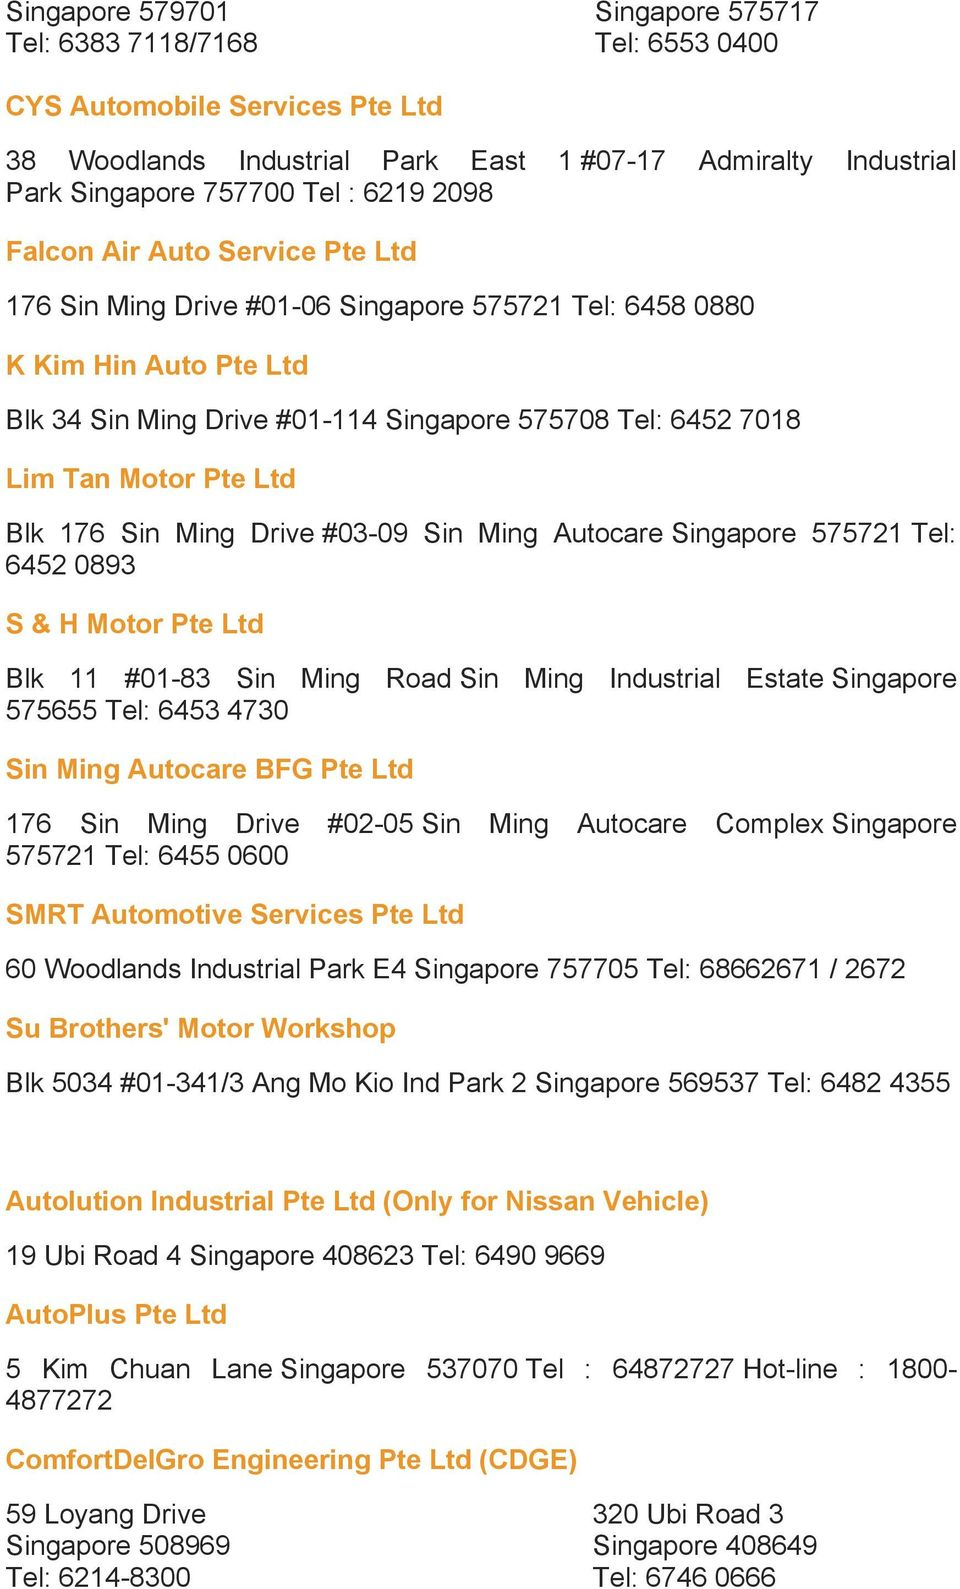 Sin Ming Autocare Singapore 575721 Tel: 6452 0893 S & H Motor Pte Ltd Blk 11 #01-83 Sin Ming Road Sin Ming Industrial Estate Singapore 575655 Tel: 6453 4730 Sin Ming Autocare BFG Pte Ltd 176 Sin Ming